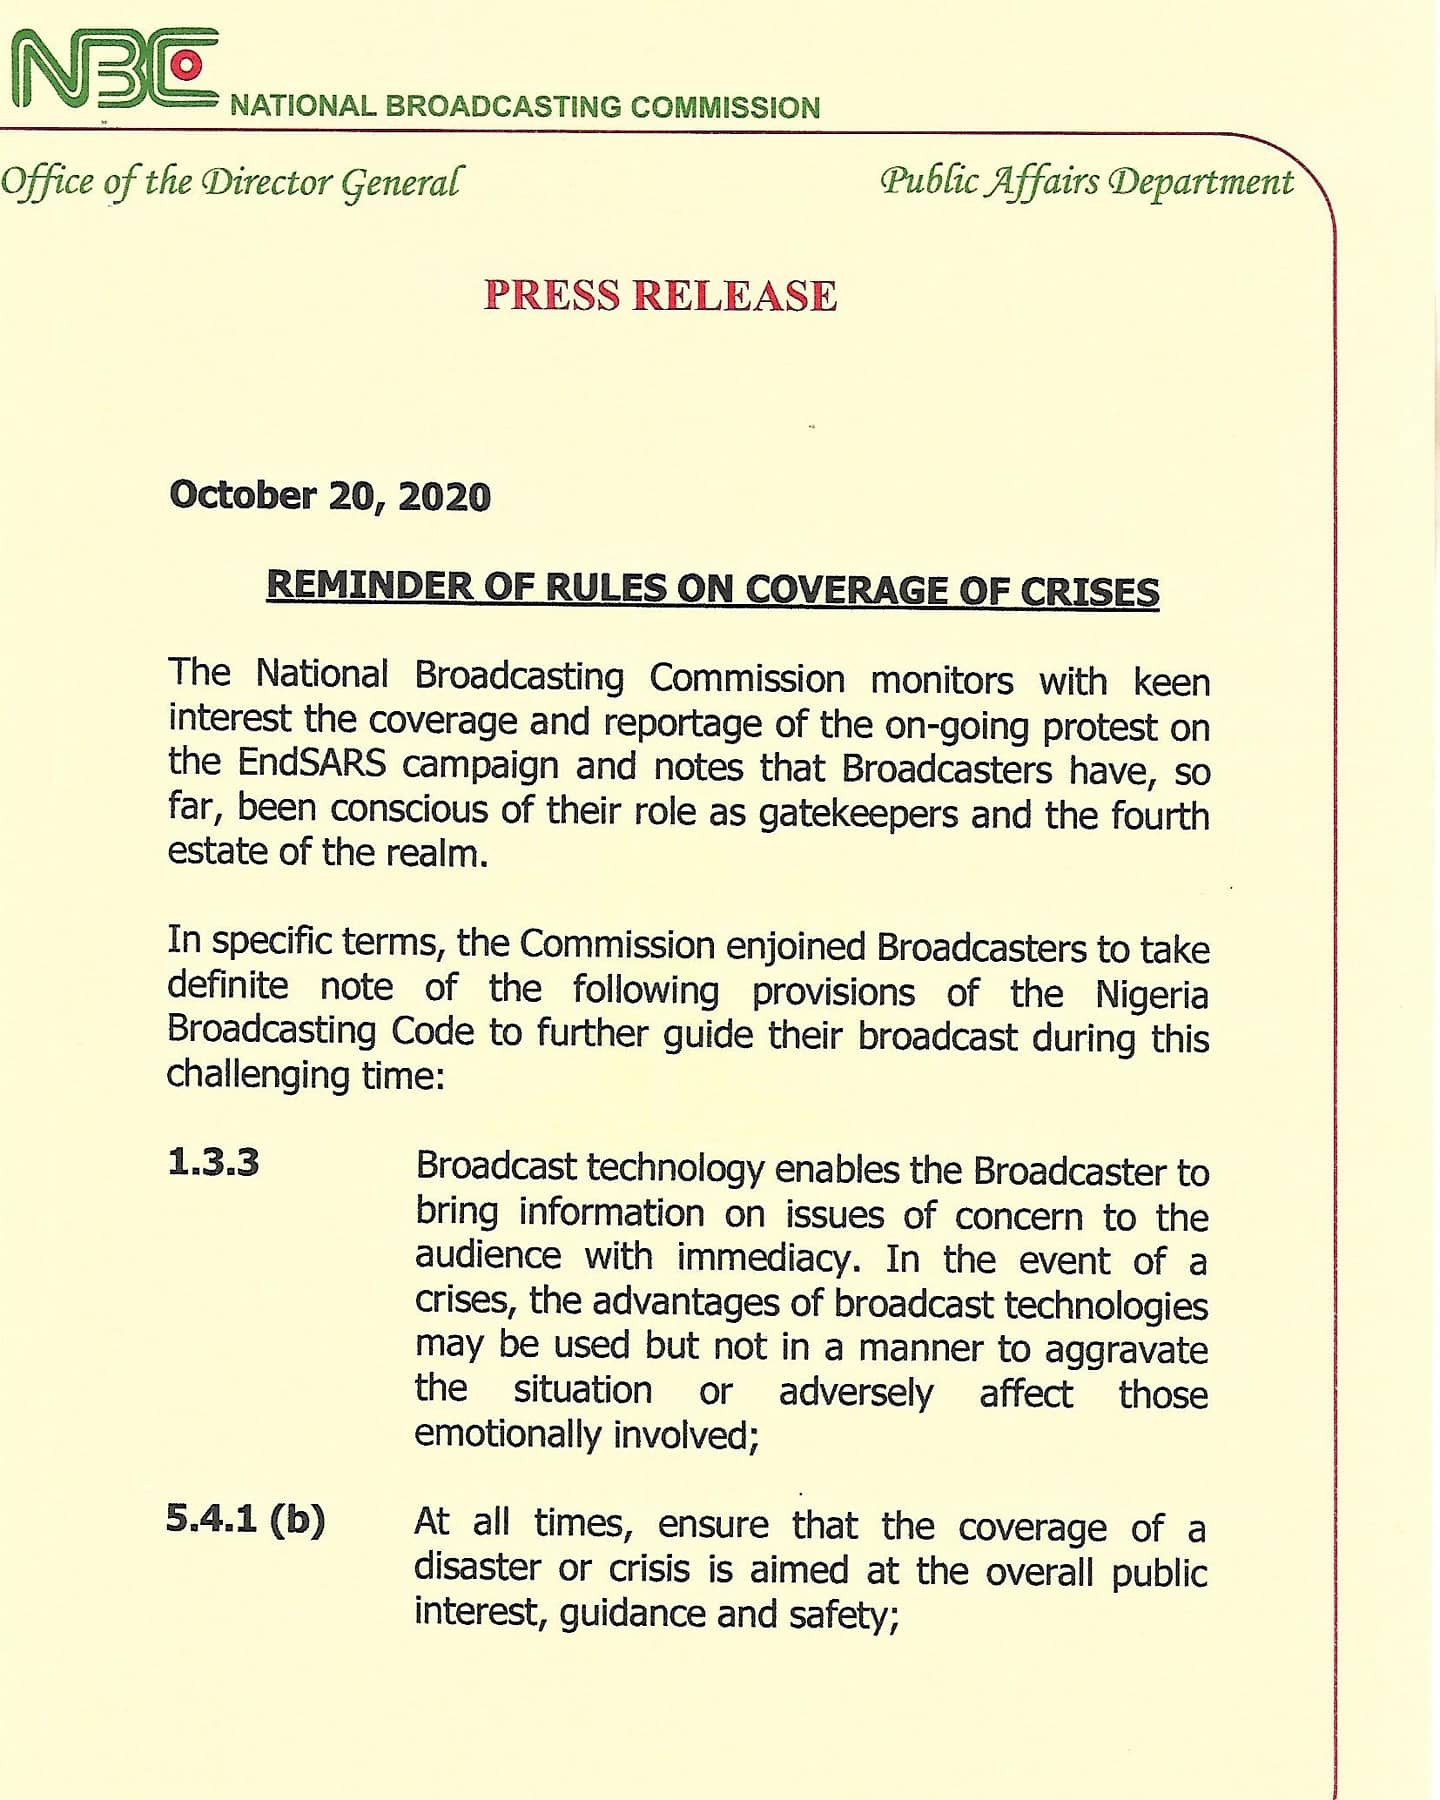 Don't embarrass government with your report on #EndSARS crisis - NBC warns media houses lindaikejisblog 2